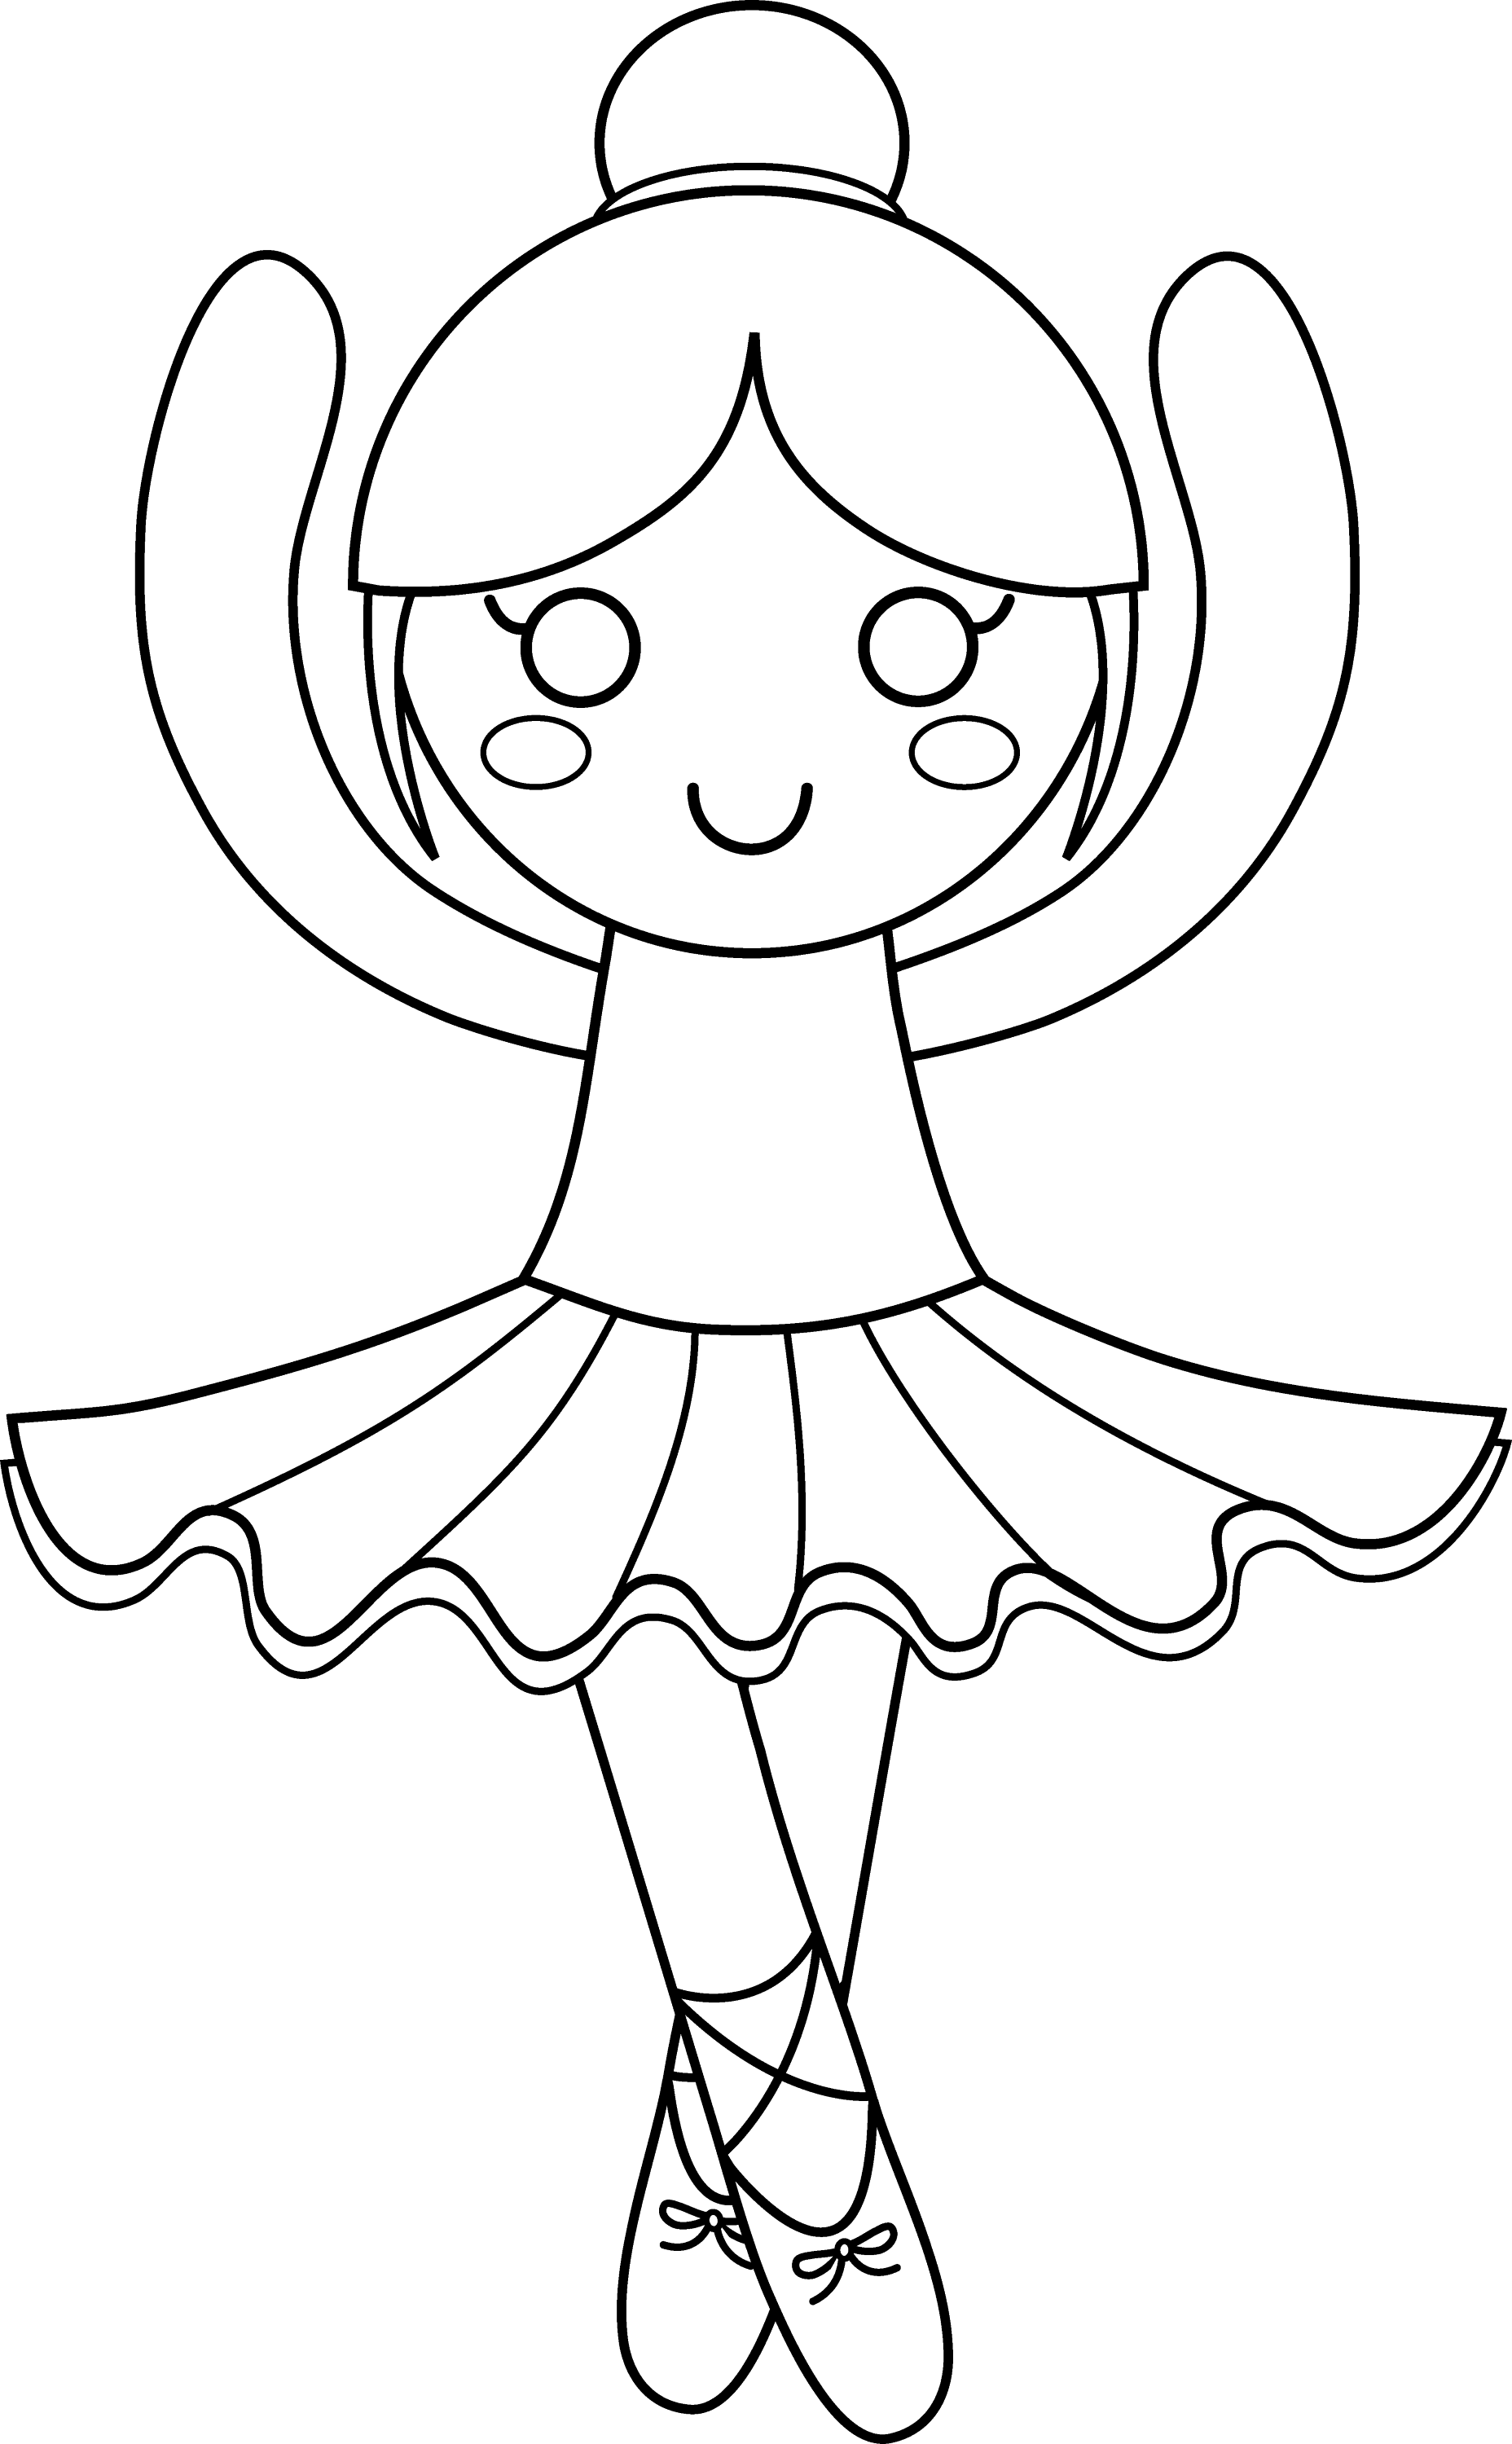 free printable ballerina coloring pages - free printable ballerina coloring pages